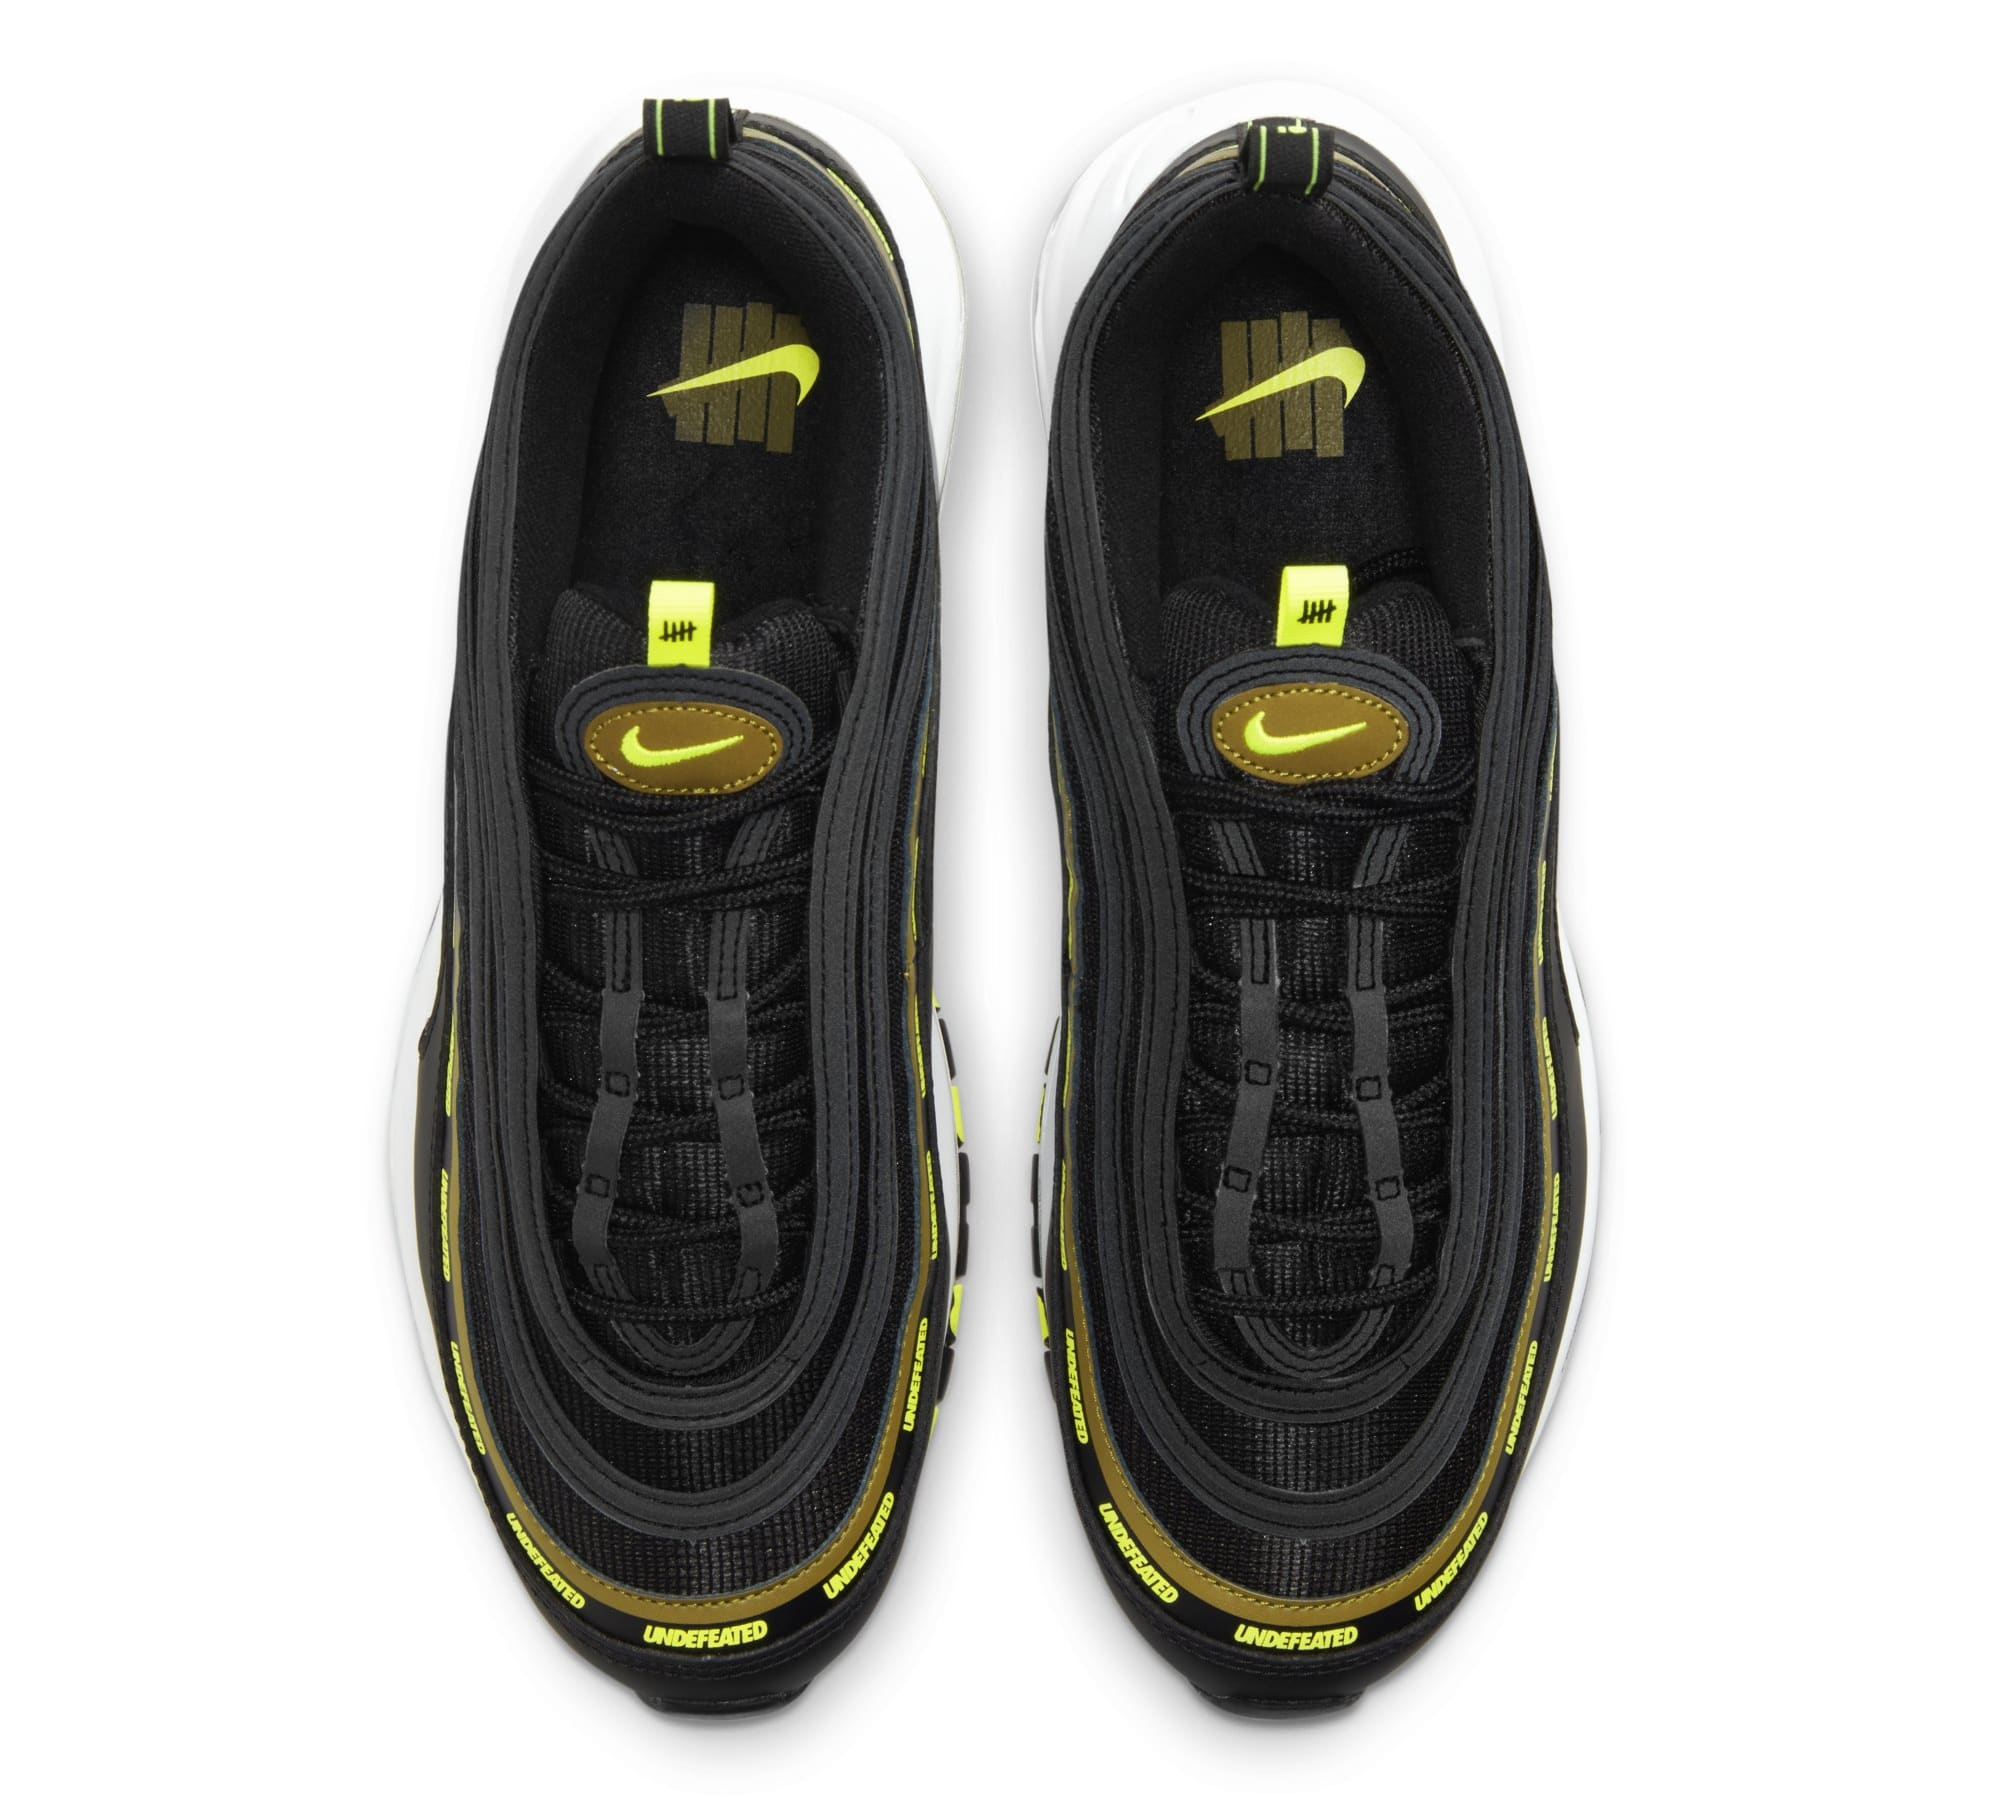 Undefeated x Nike Air Max 97 'Black/Volt' DC4830-001 (Top)